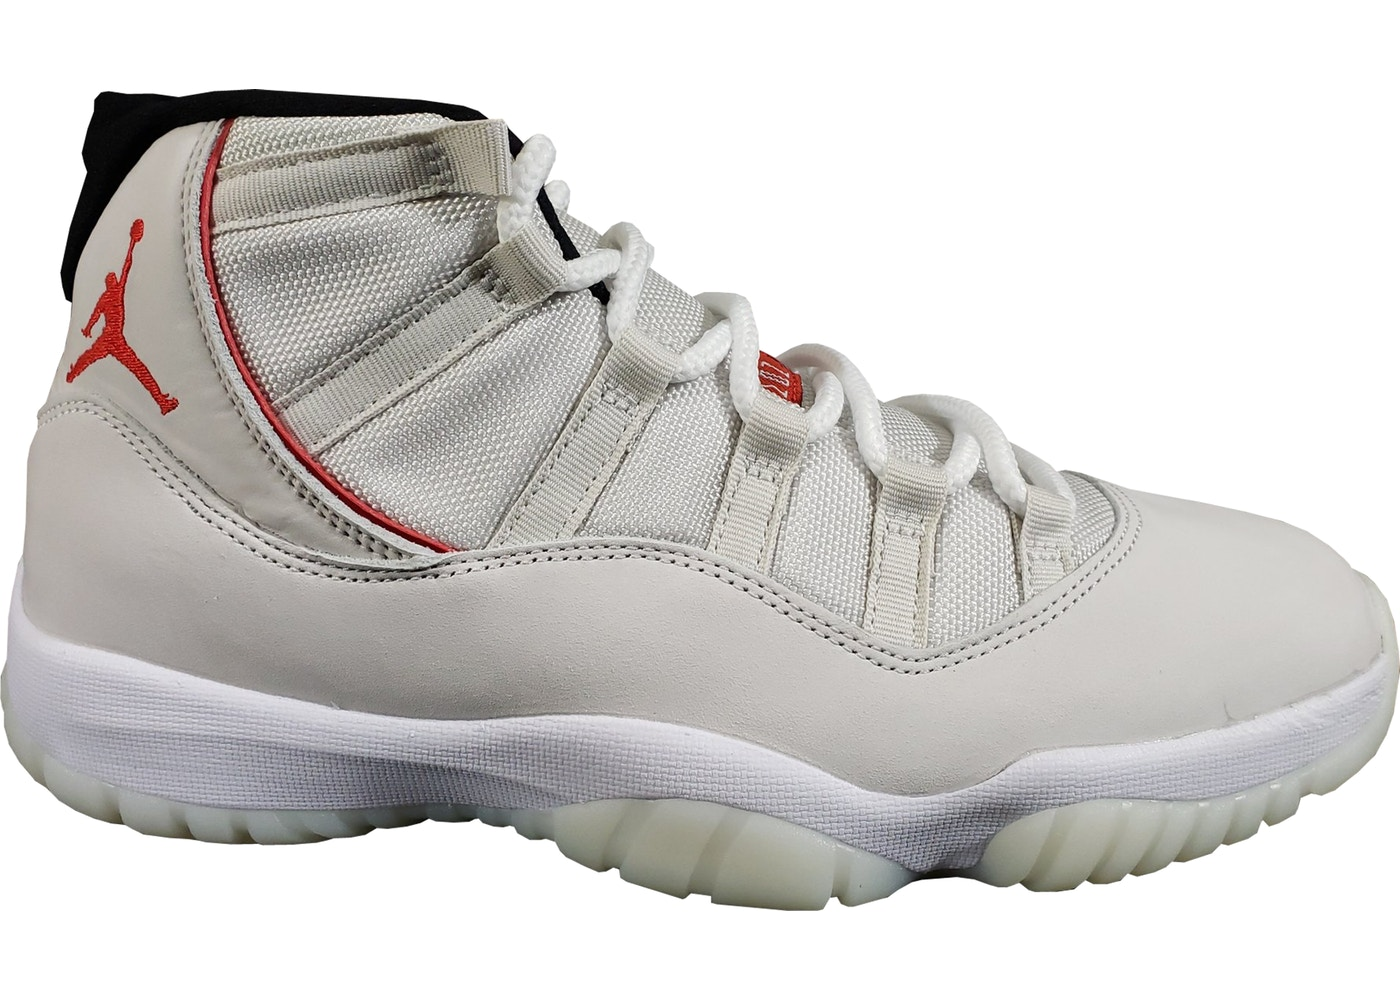 low priced f6293 8db0c JORDAN 11 RETRO PLATINUM TINKER